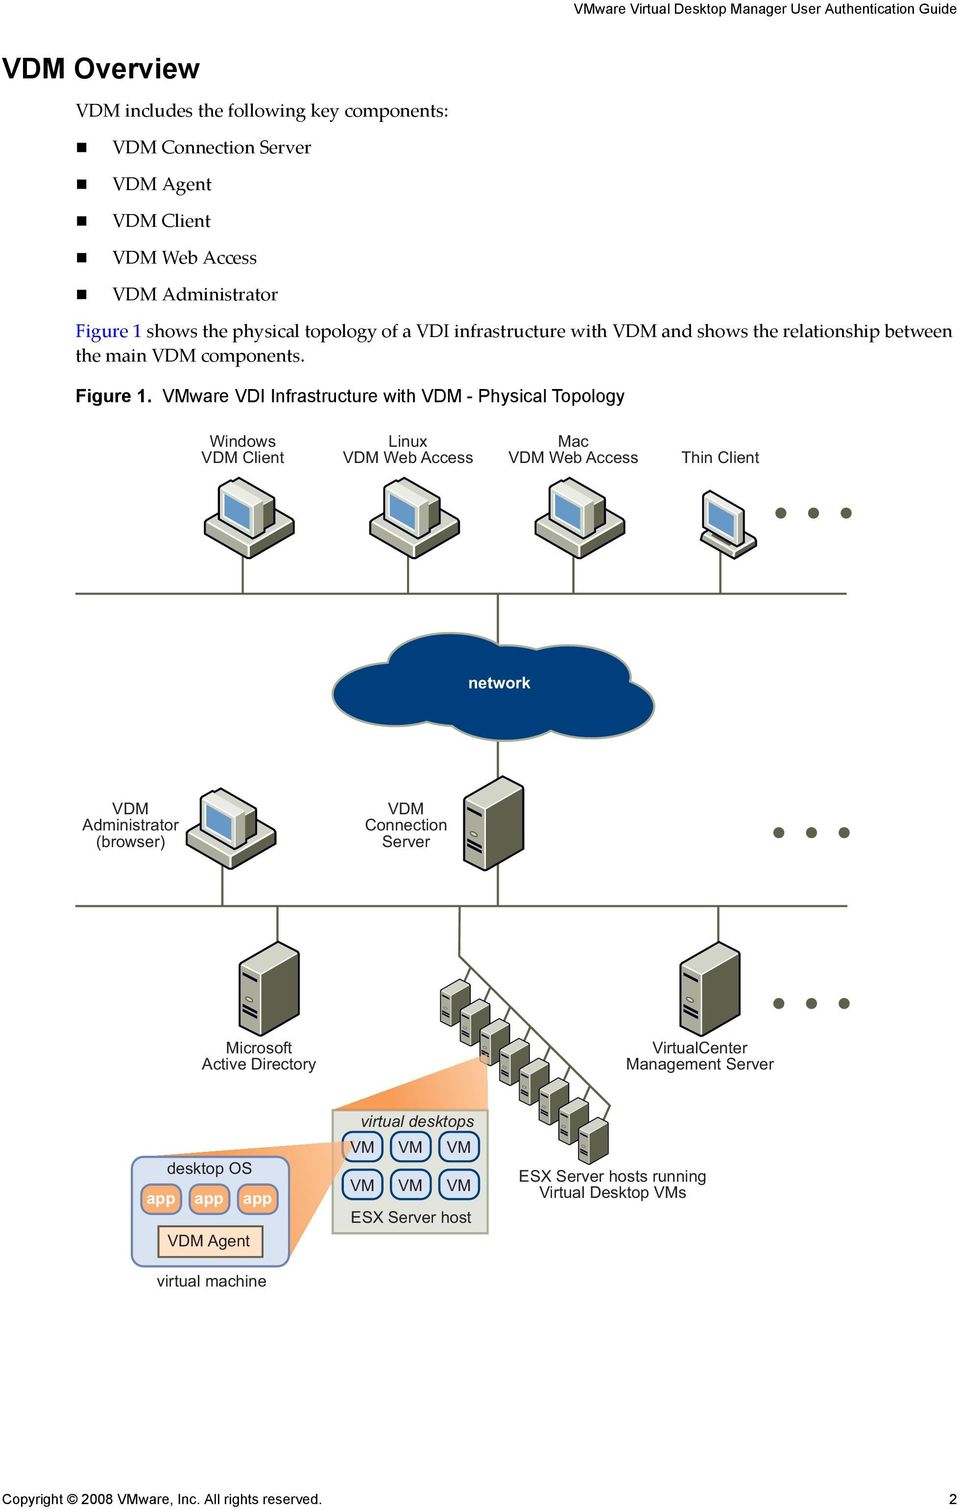 VMware VDI Infrastructure with - Physical Topology Windows Client Linux Web Access Mac Web Access Thin Client network Administrator (browser) Connection Server